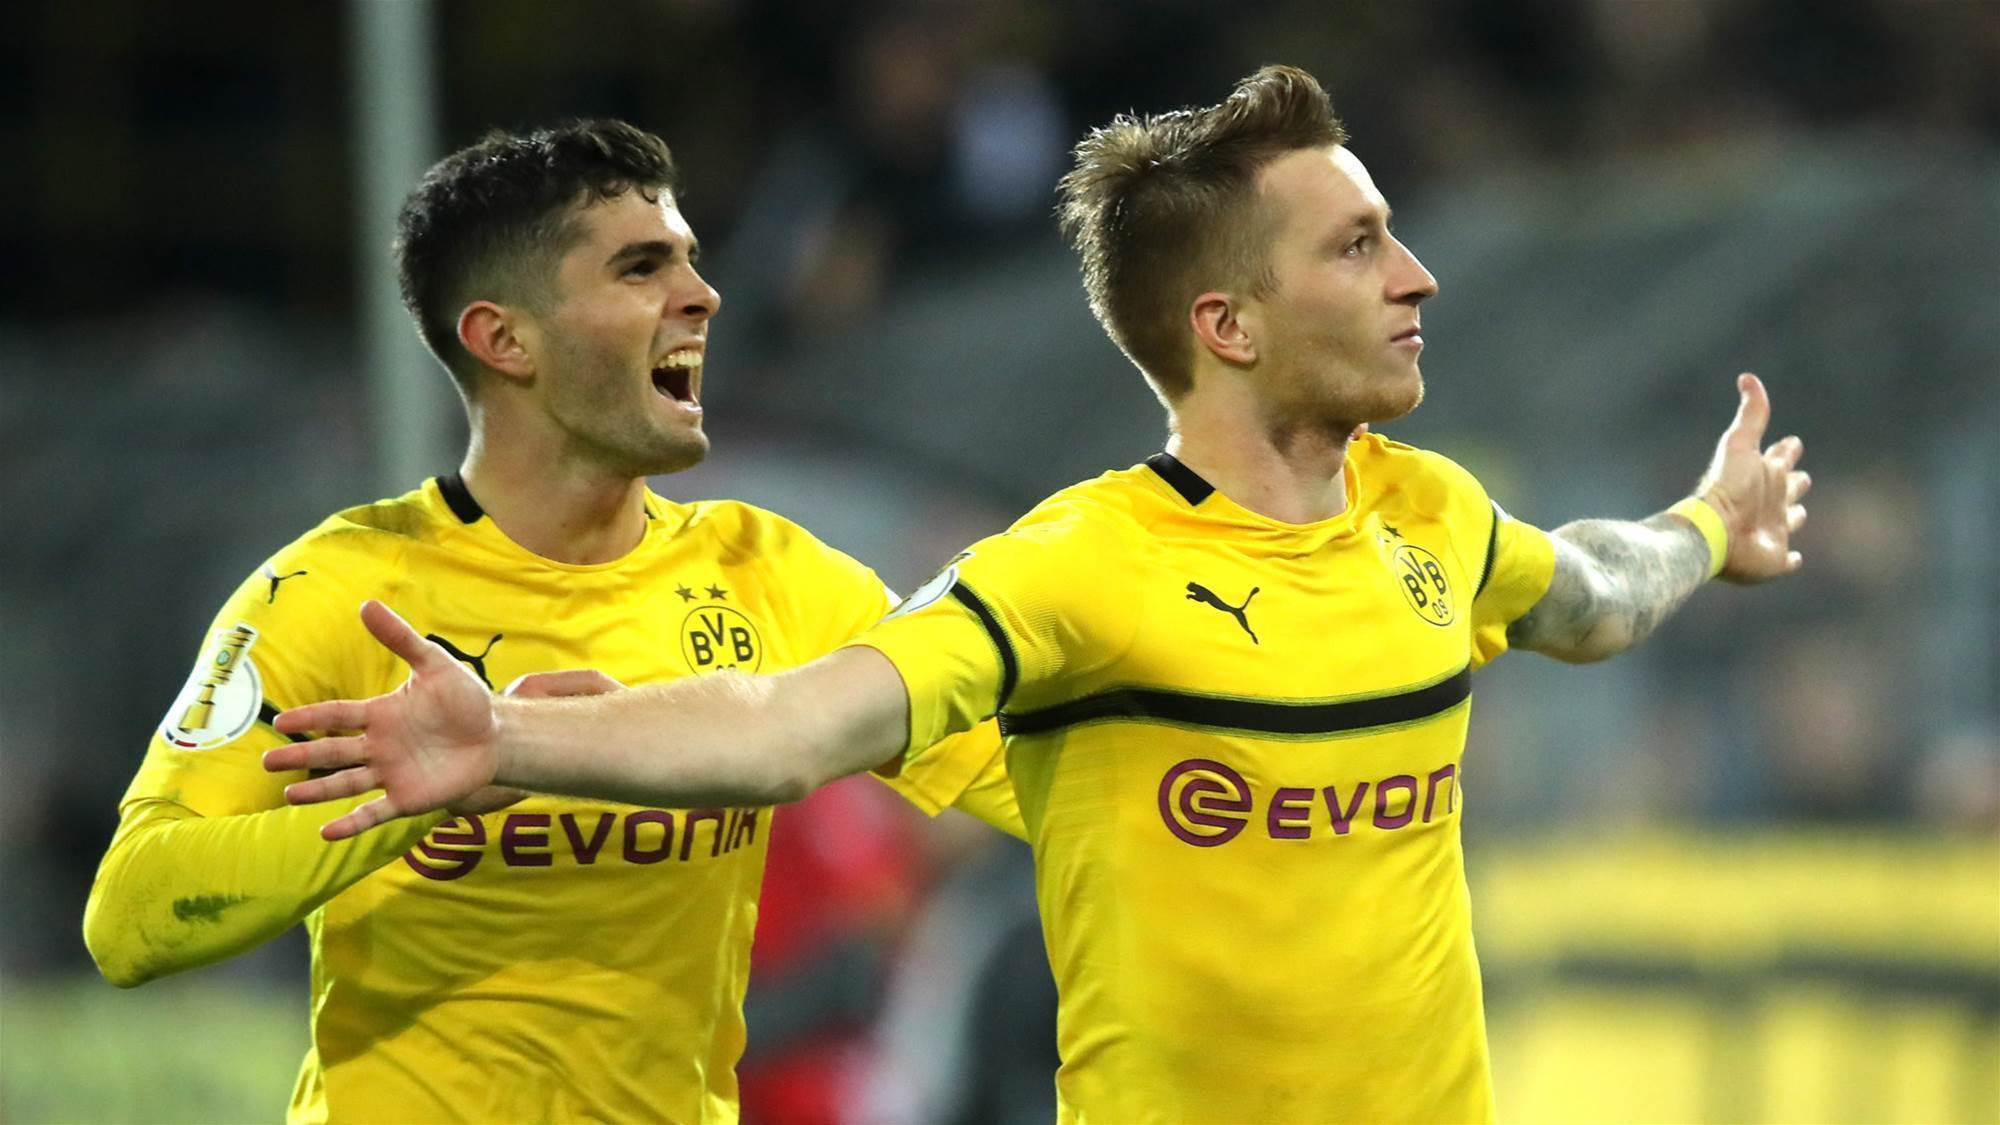 Watch! FIFA World Tour: Dortmund, Reus & MoTrip vs Pulisic & Payne